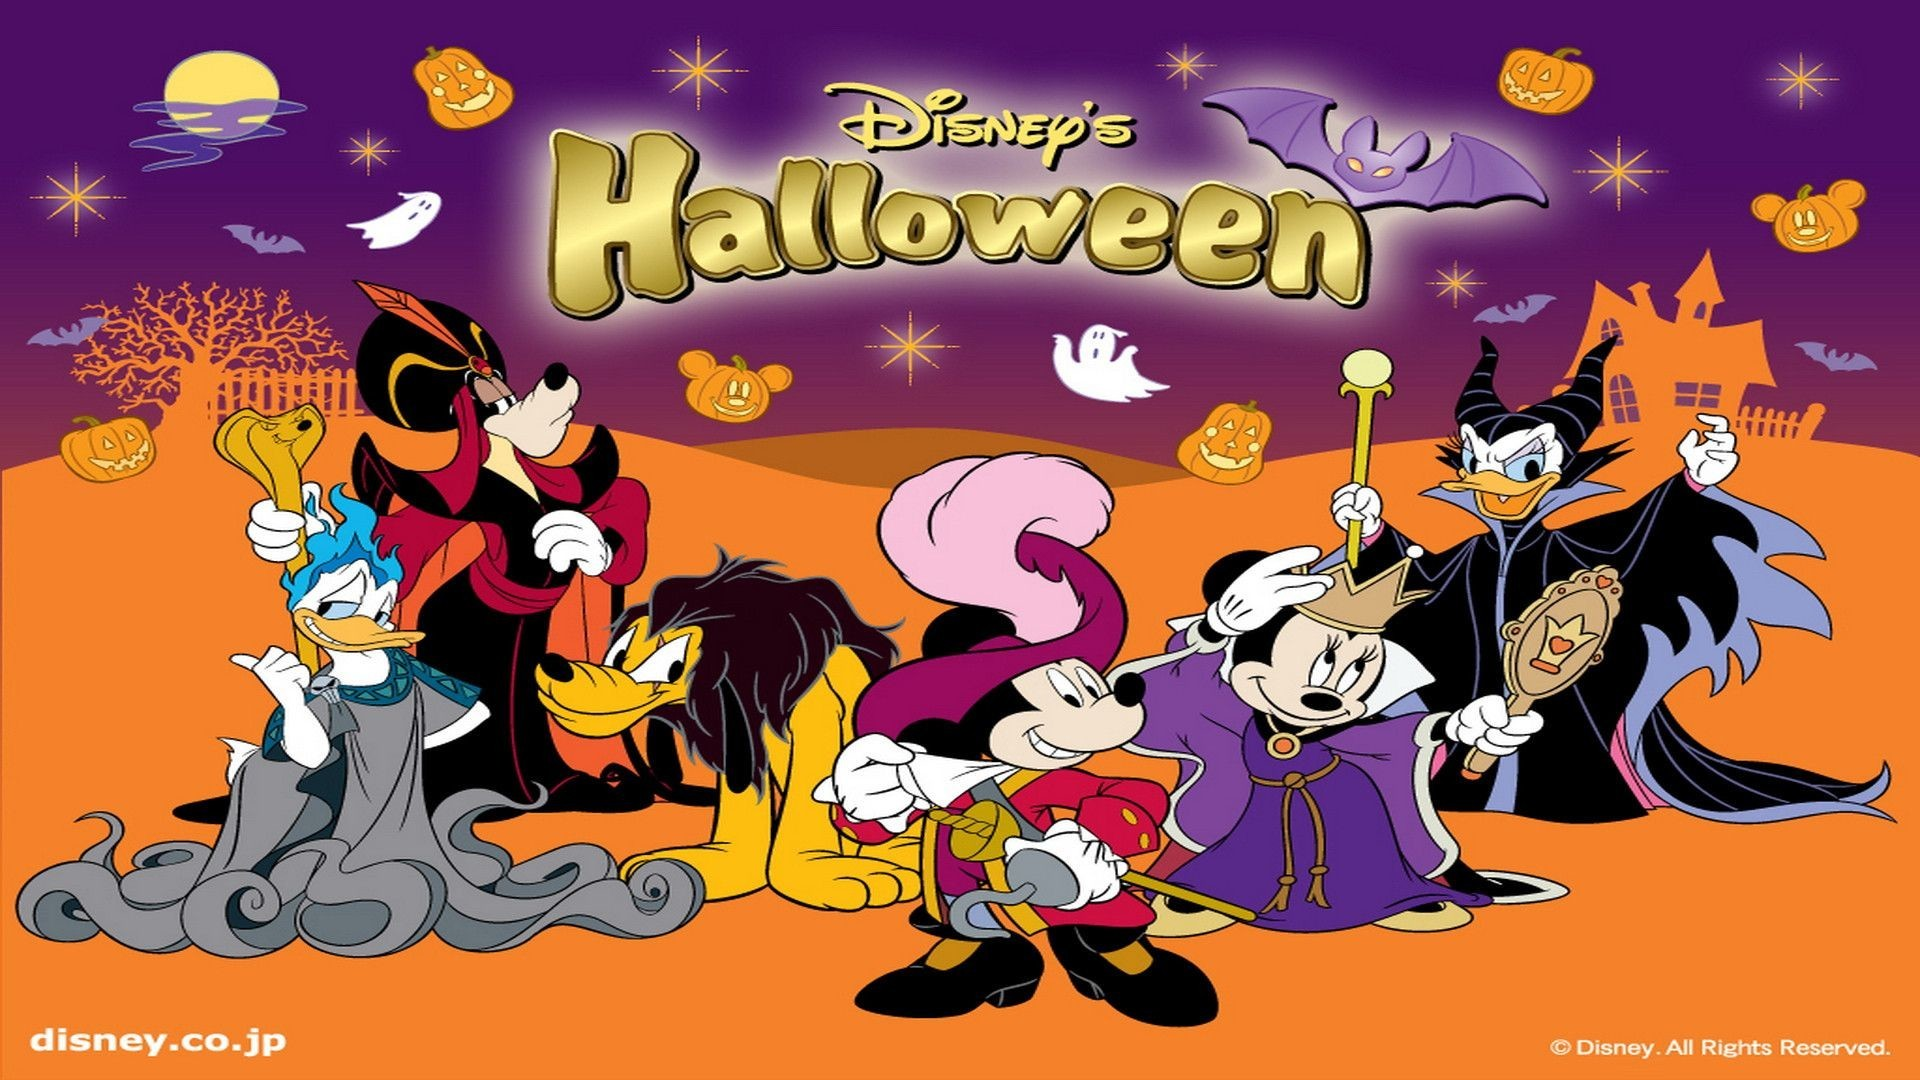 Desktop Wallpaper Disney Halloween Siboneycubancuisine.com